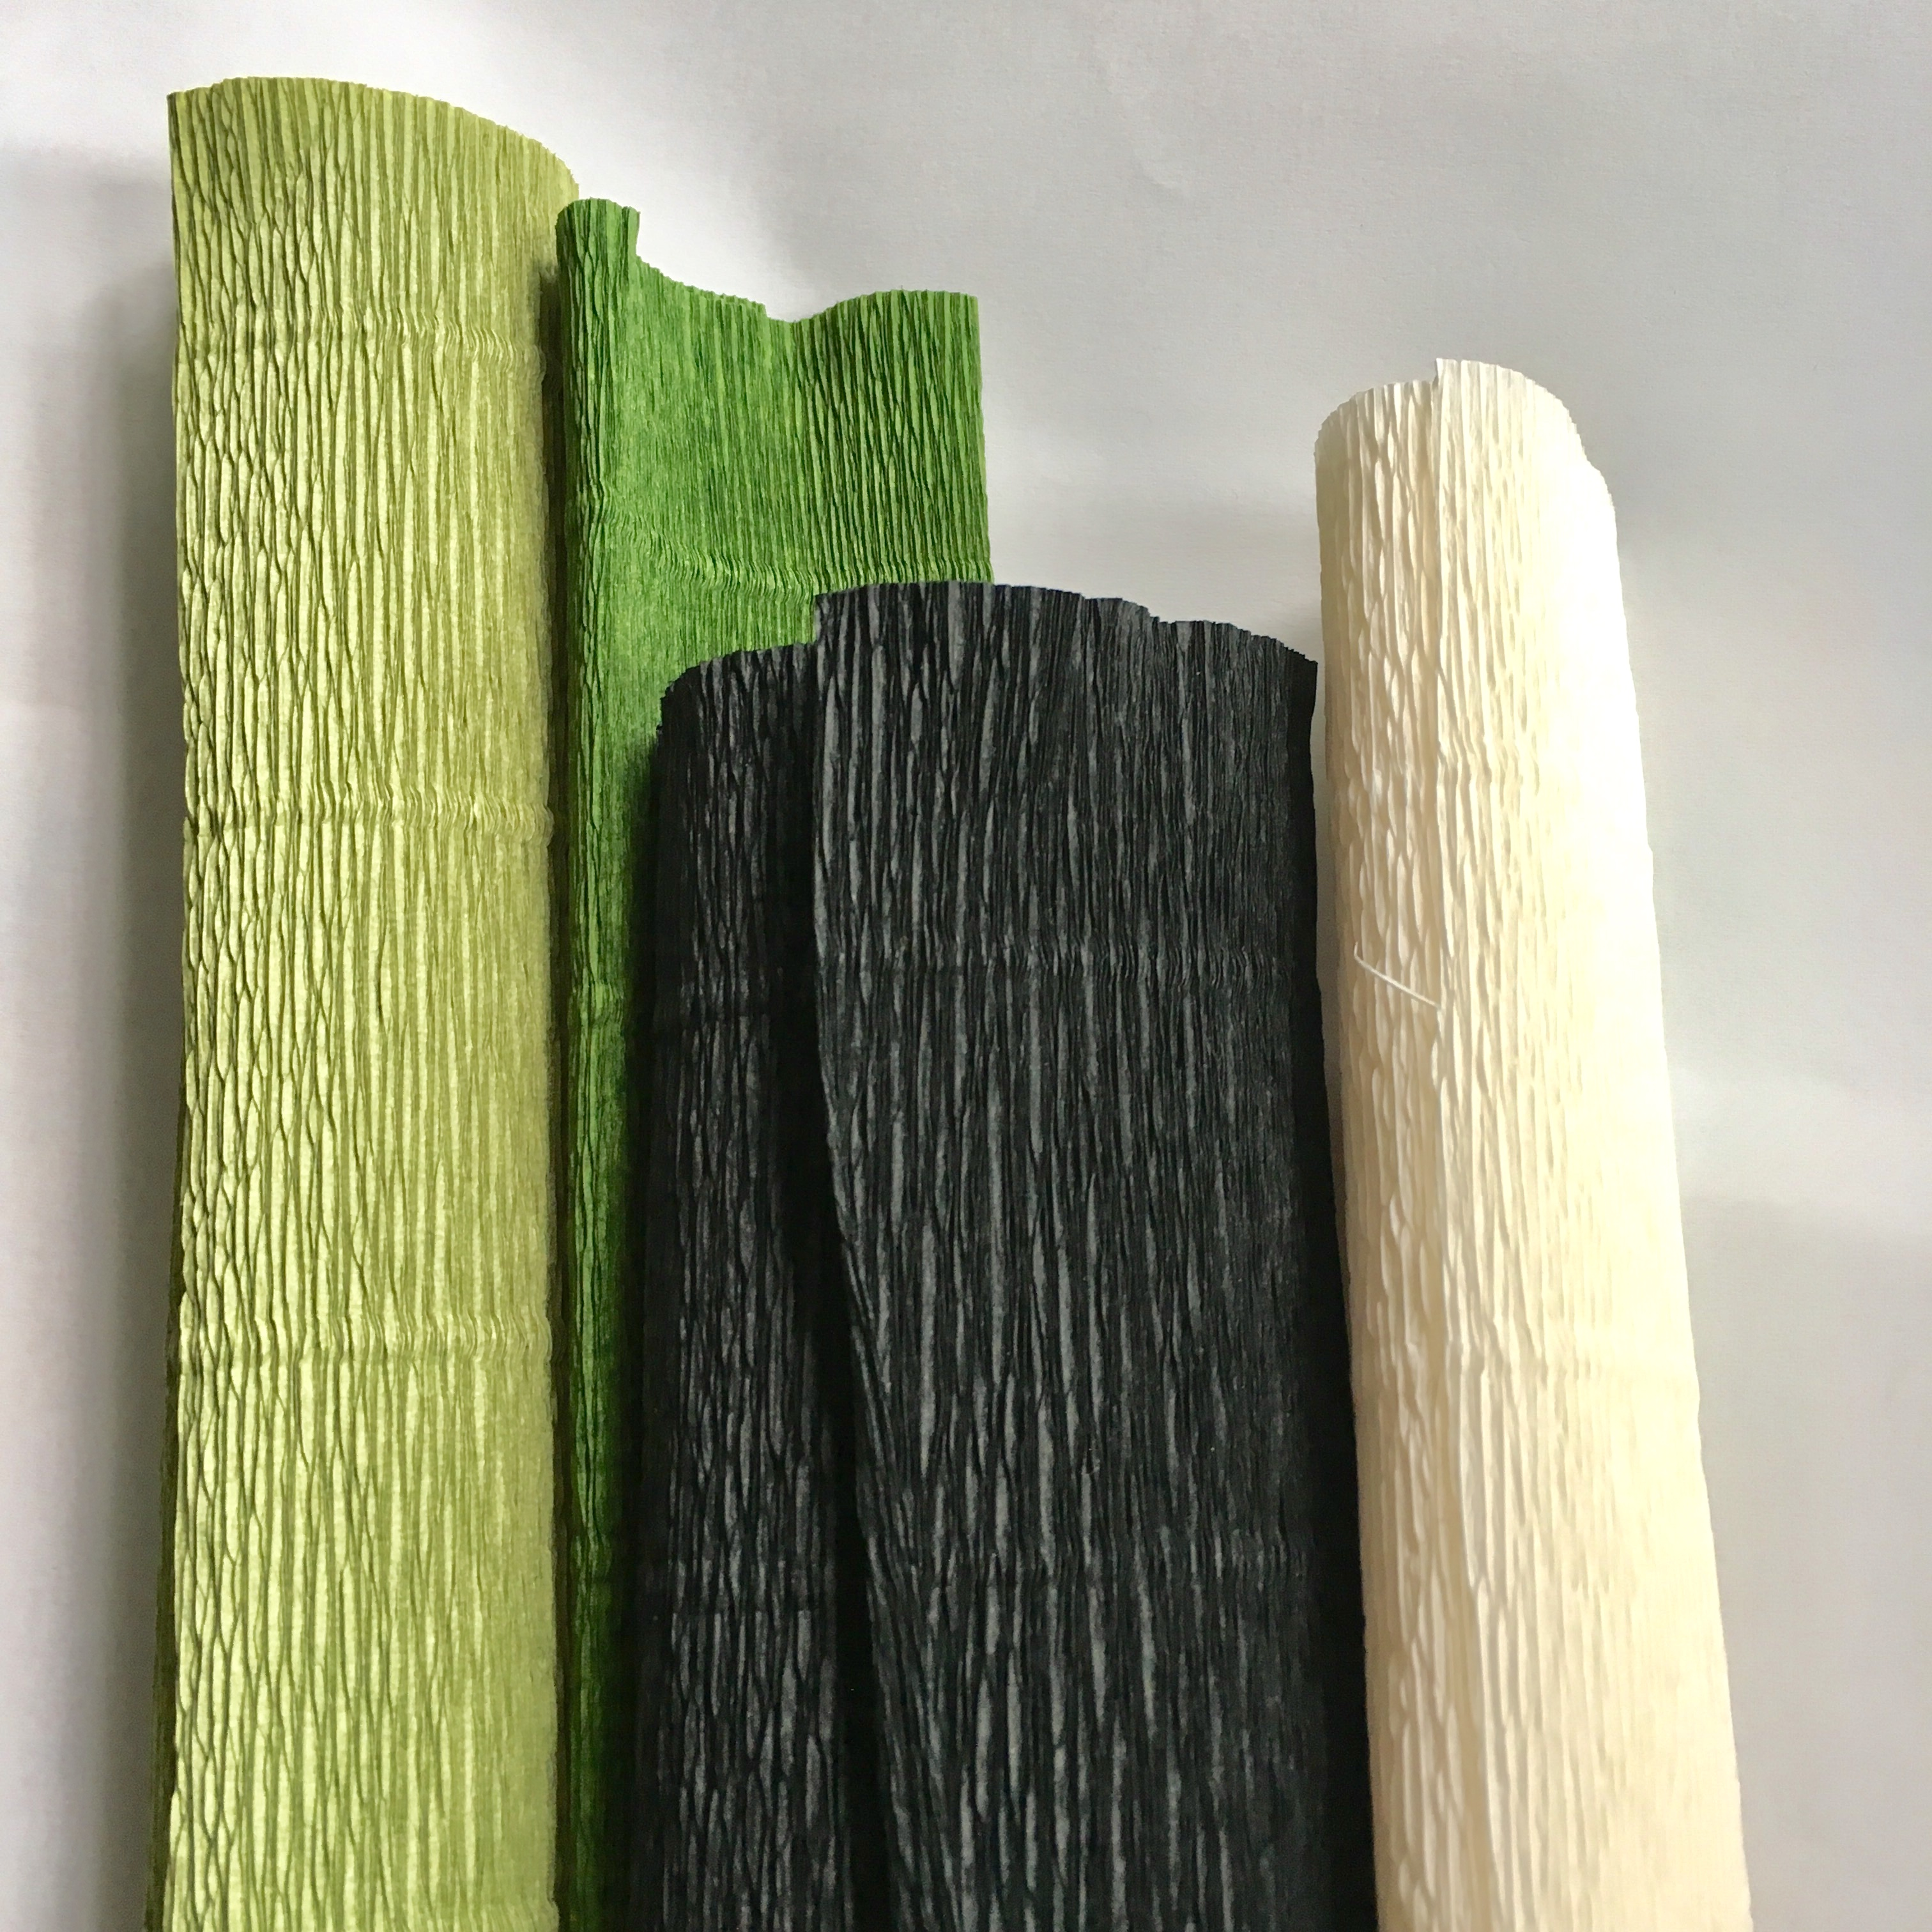 crepe papers in green, black and white